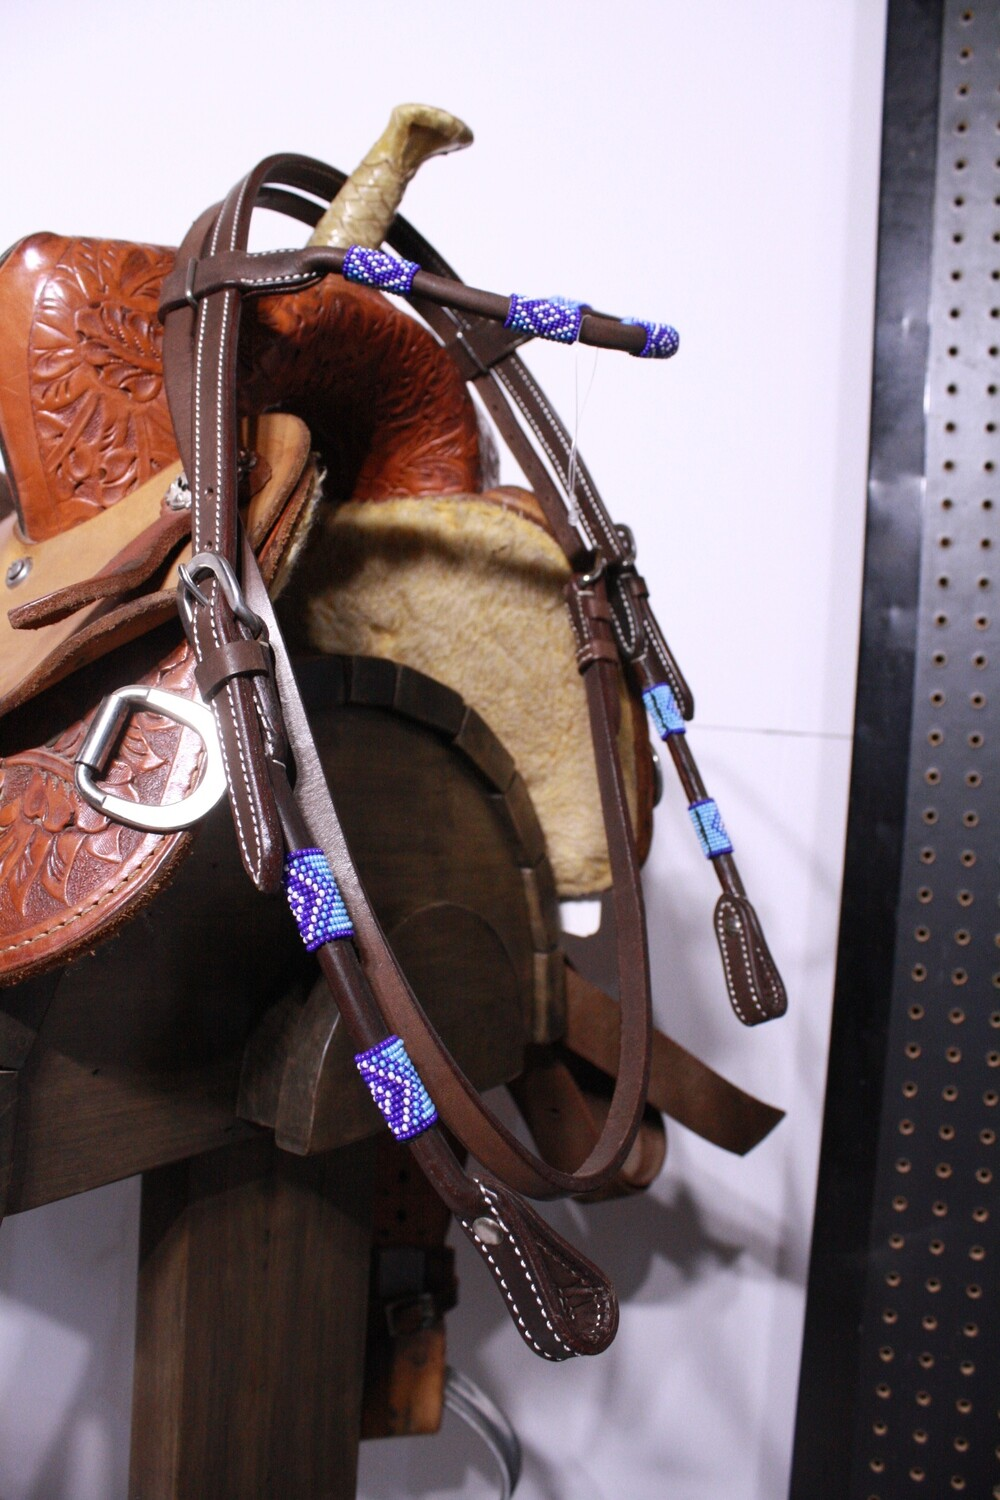 Umber Tack Dark Brown Browband Head Stall with Blue/Purple Beads